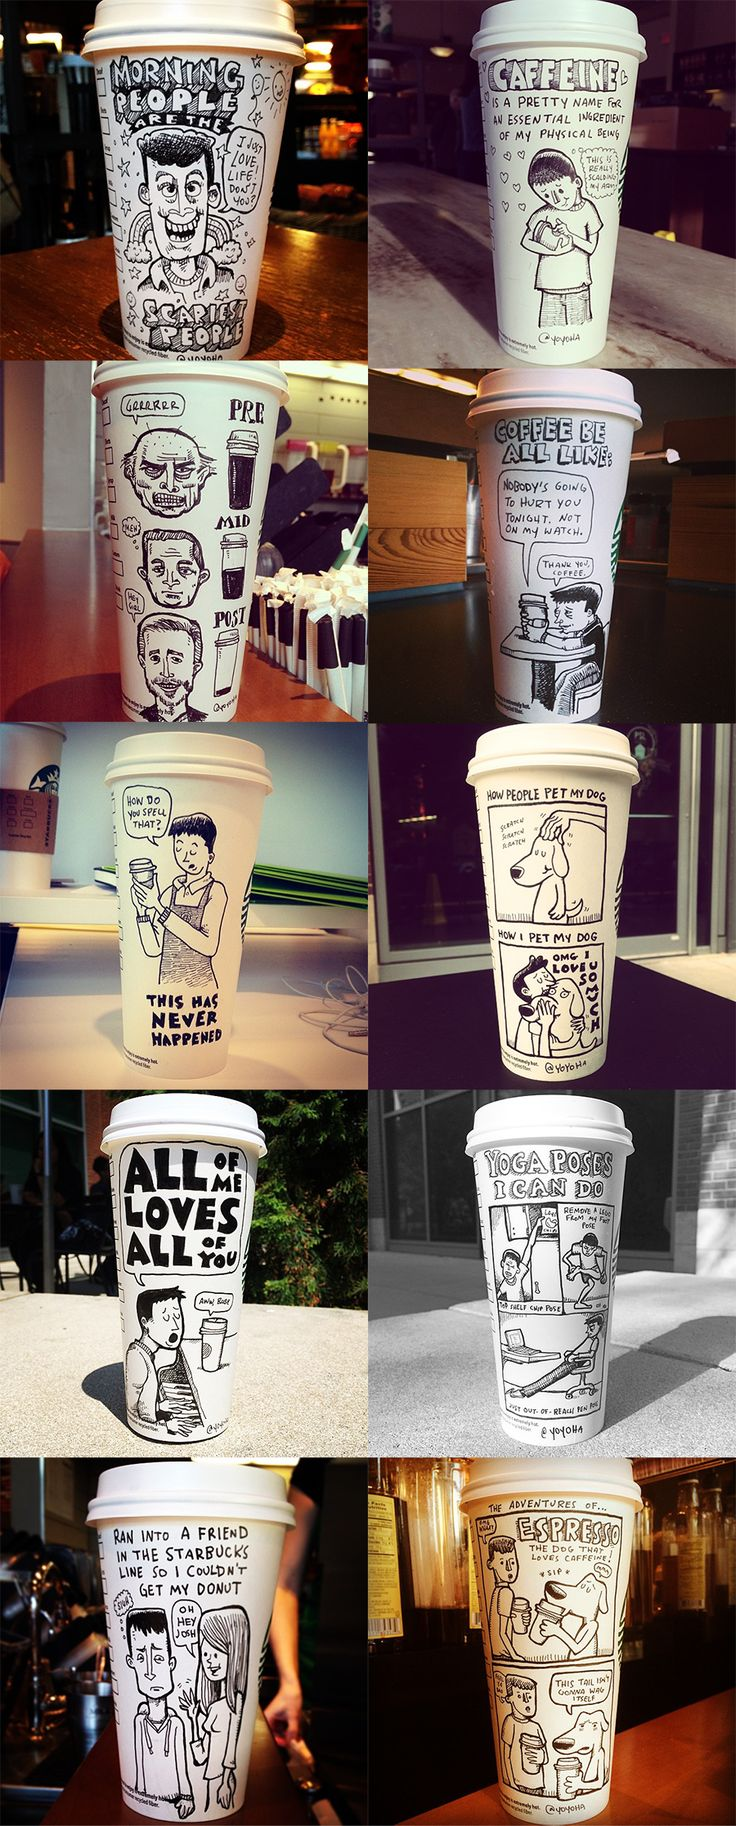 Cartoonist Josh Hara uses the back of his coffee cups as a canvas for funny and intricate comics, ranging in topic from our never-ending coffee addiction to celebrity spoofs and more.